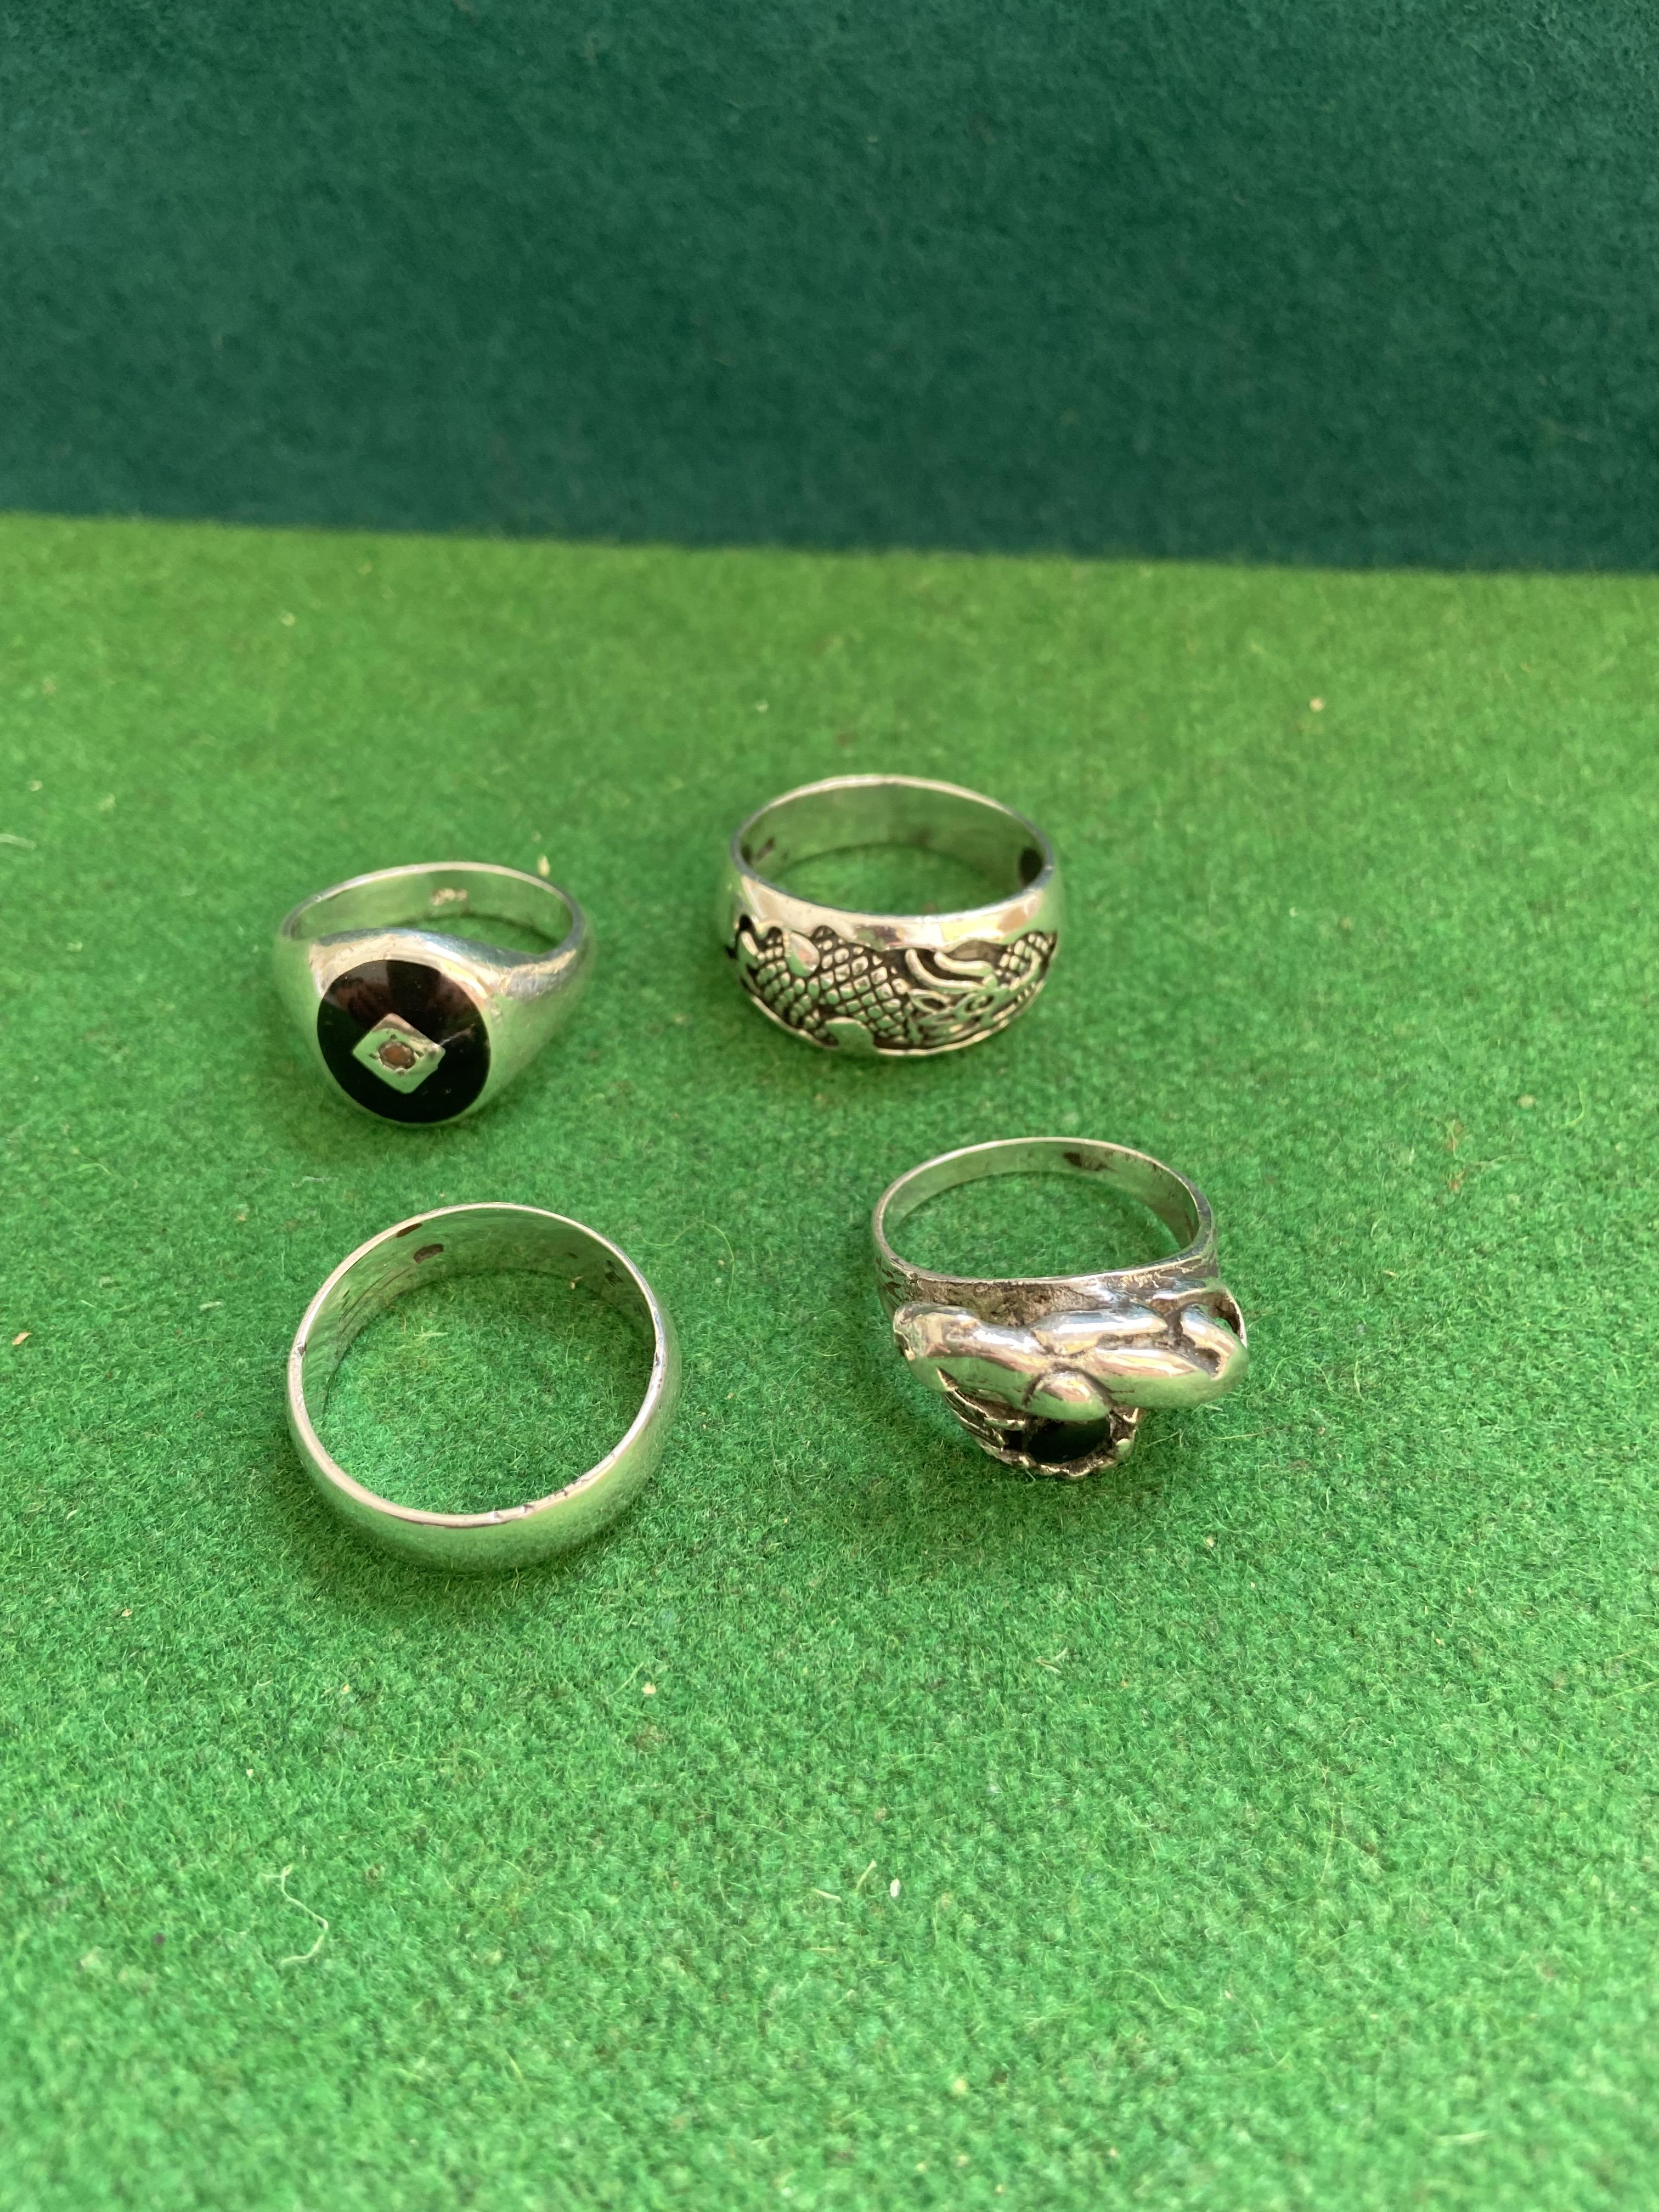 Bag of 4 heavy silver rings - Image 2 of 2